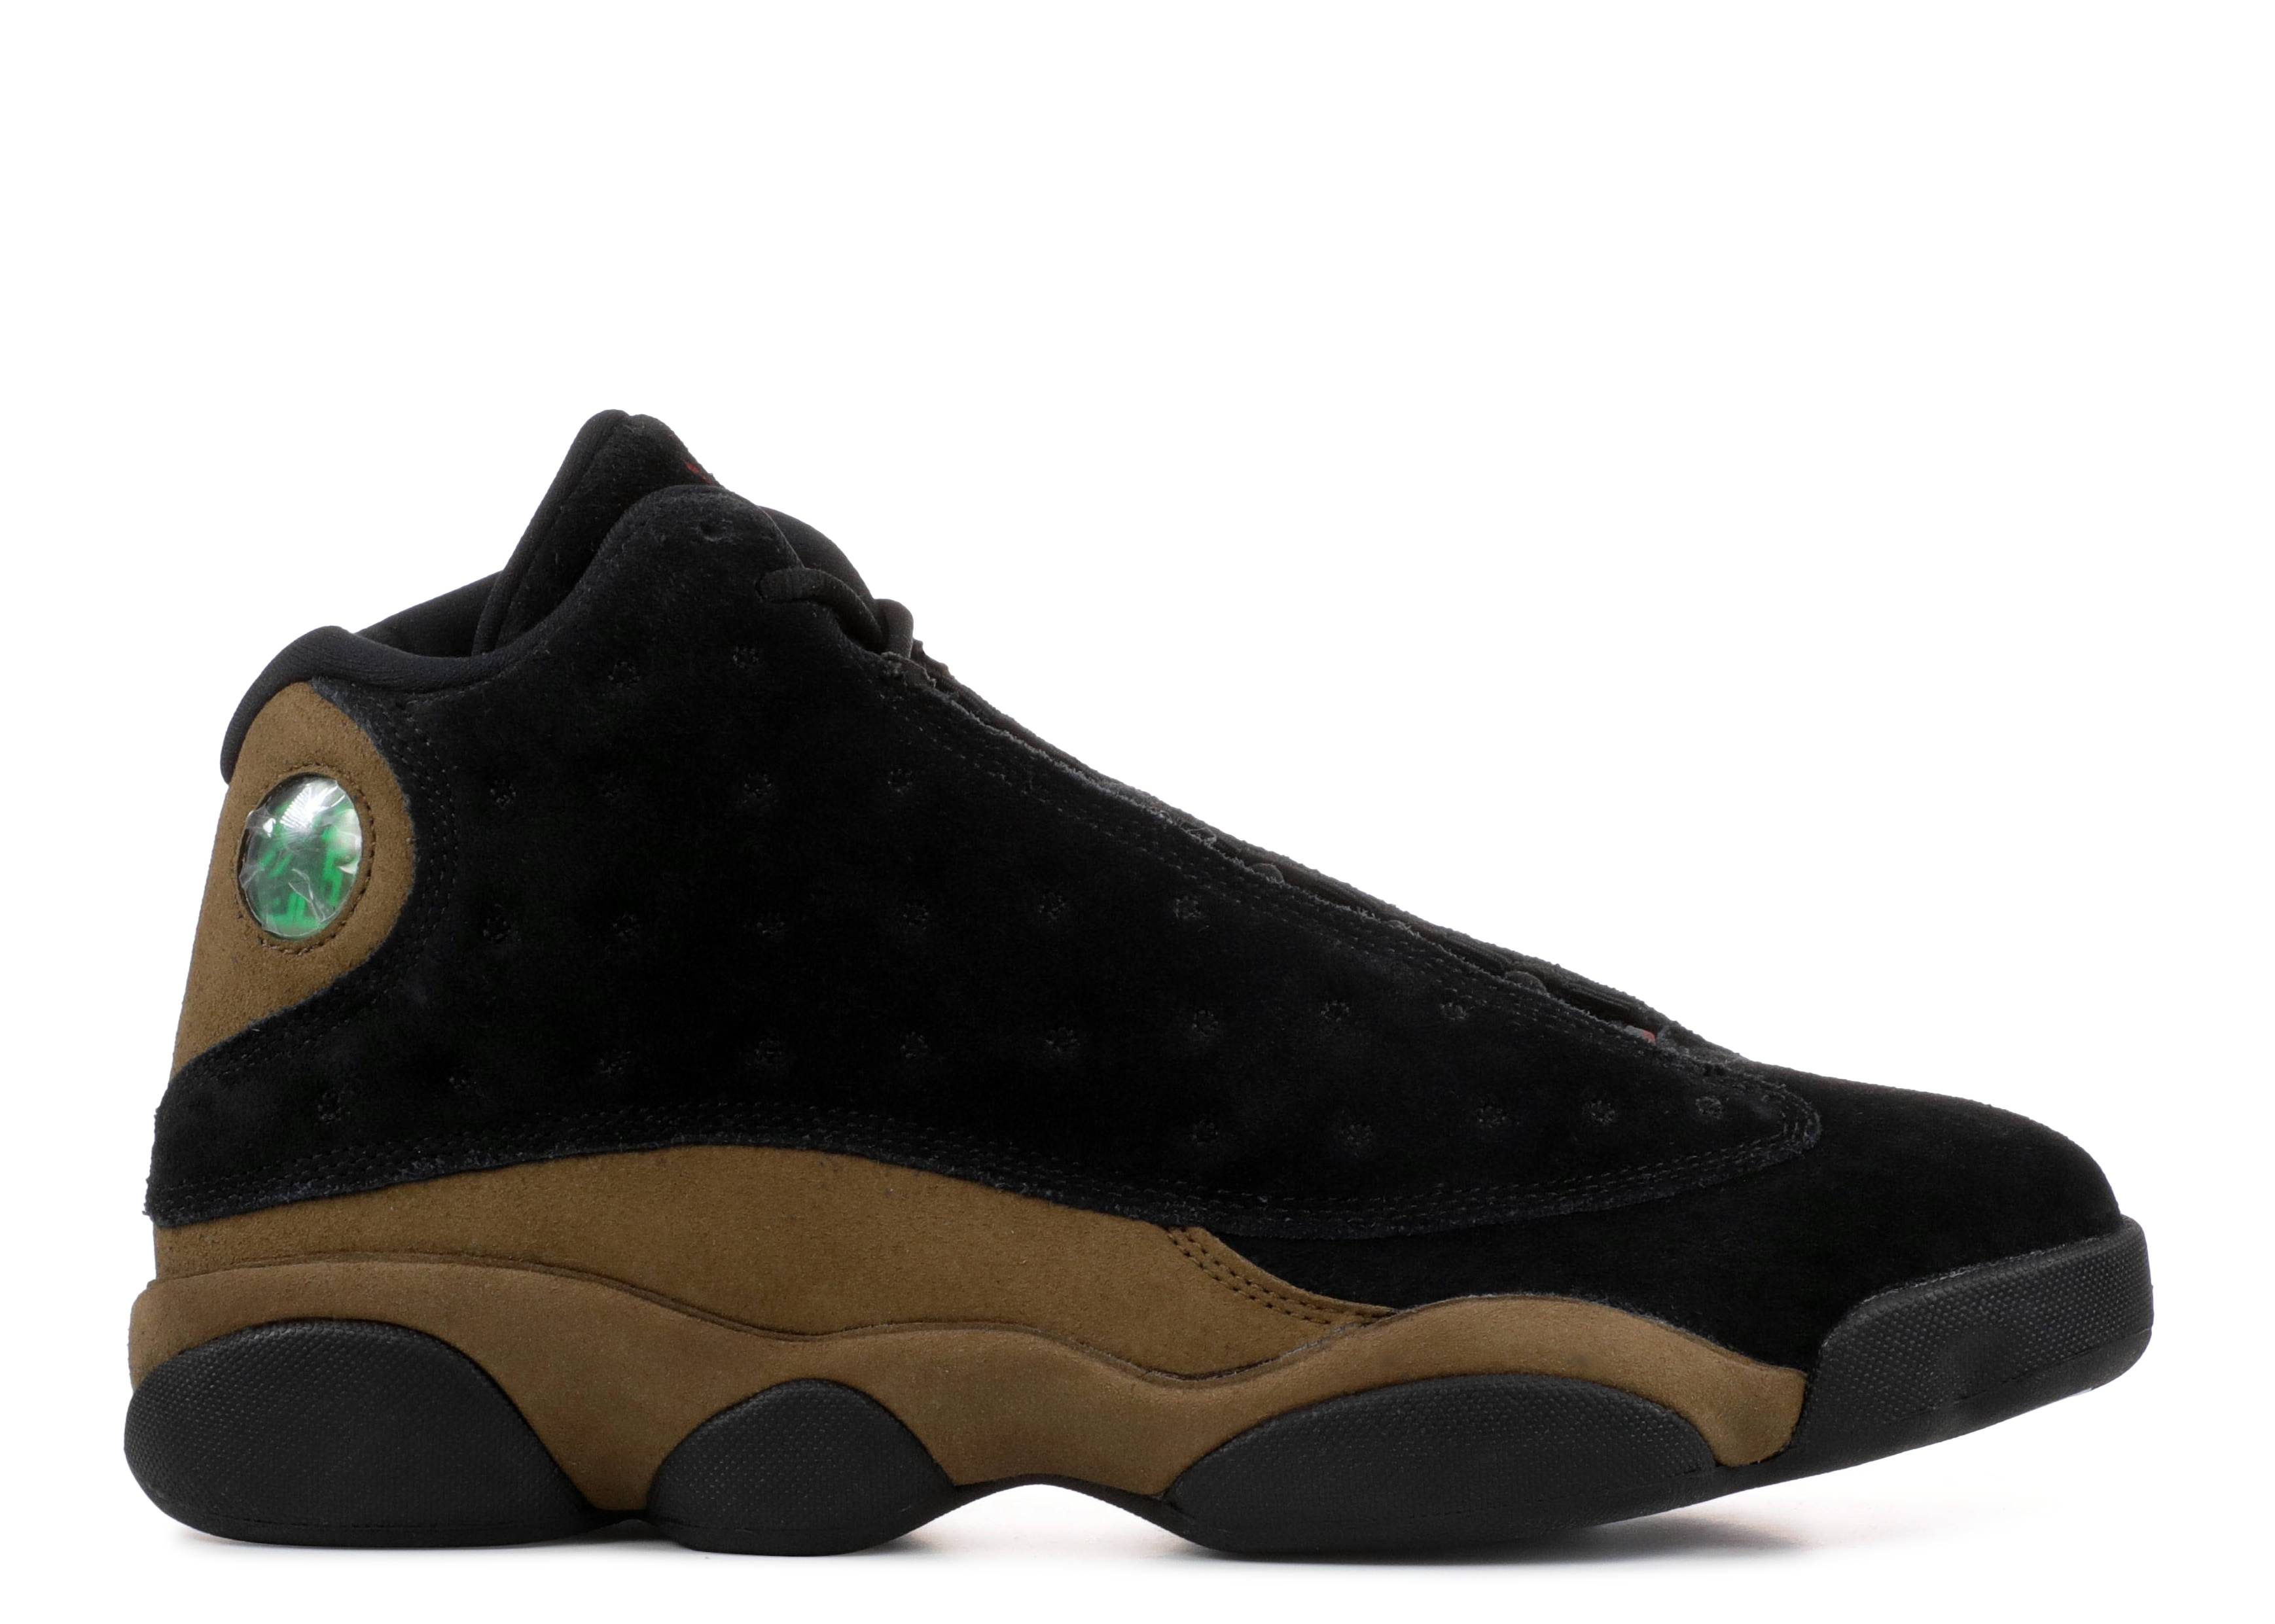 7d3607b9ddc Air Jordan 13 (XIII) Shoes - Nike | Flight Club